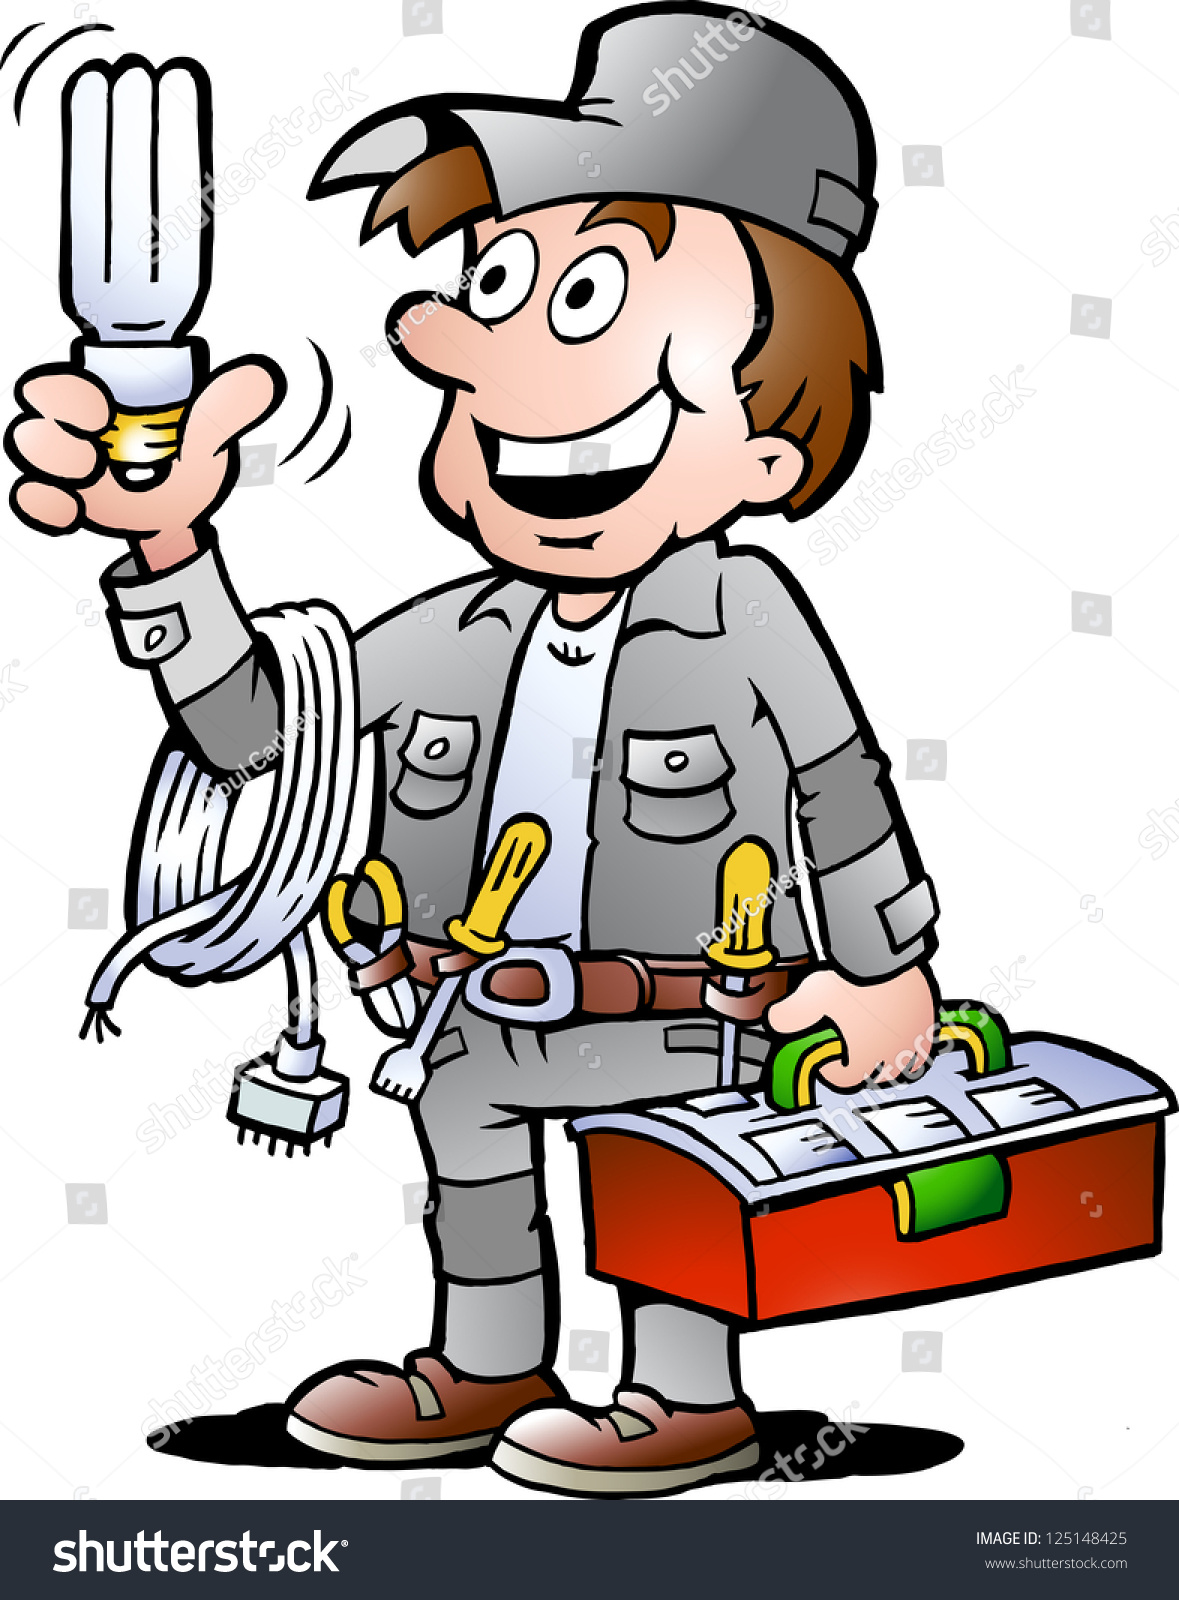 how to get my journeyman electrician license